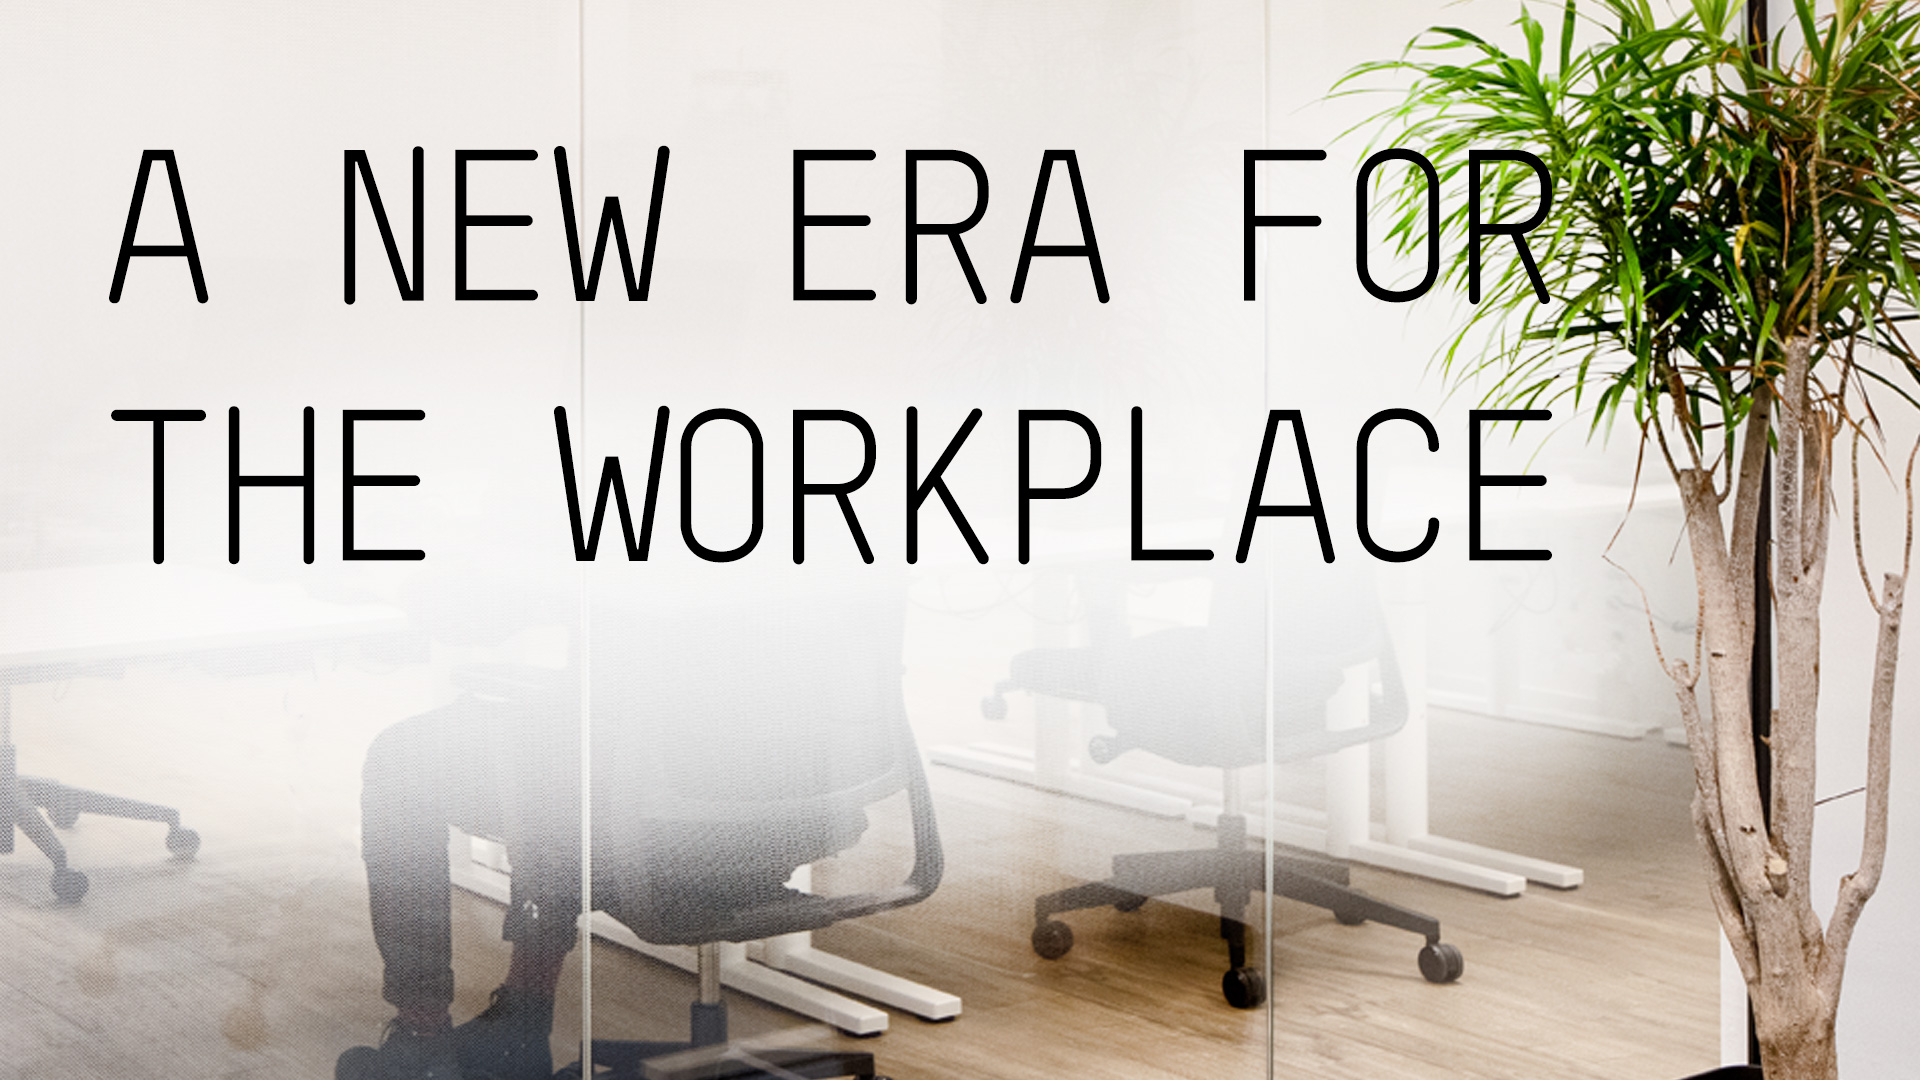 A new era for the workplace